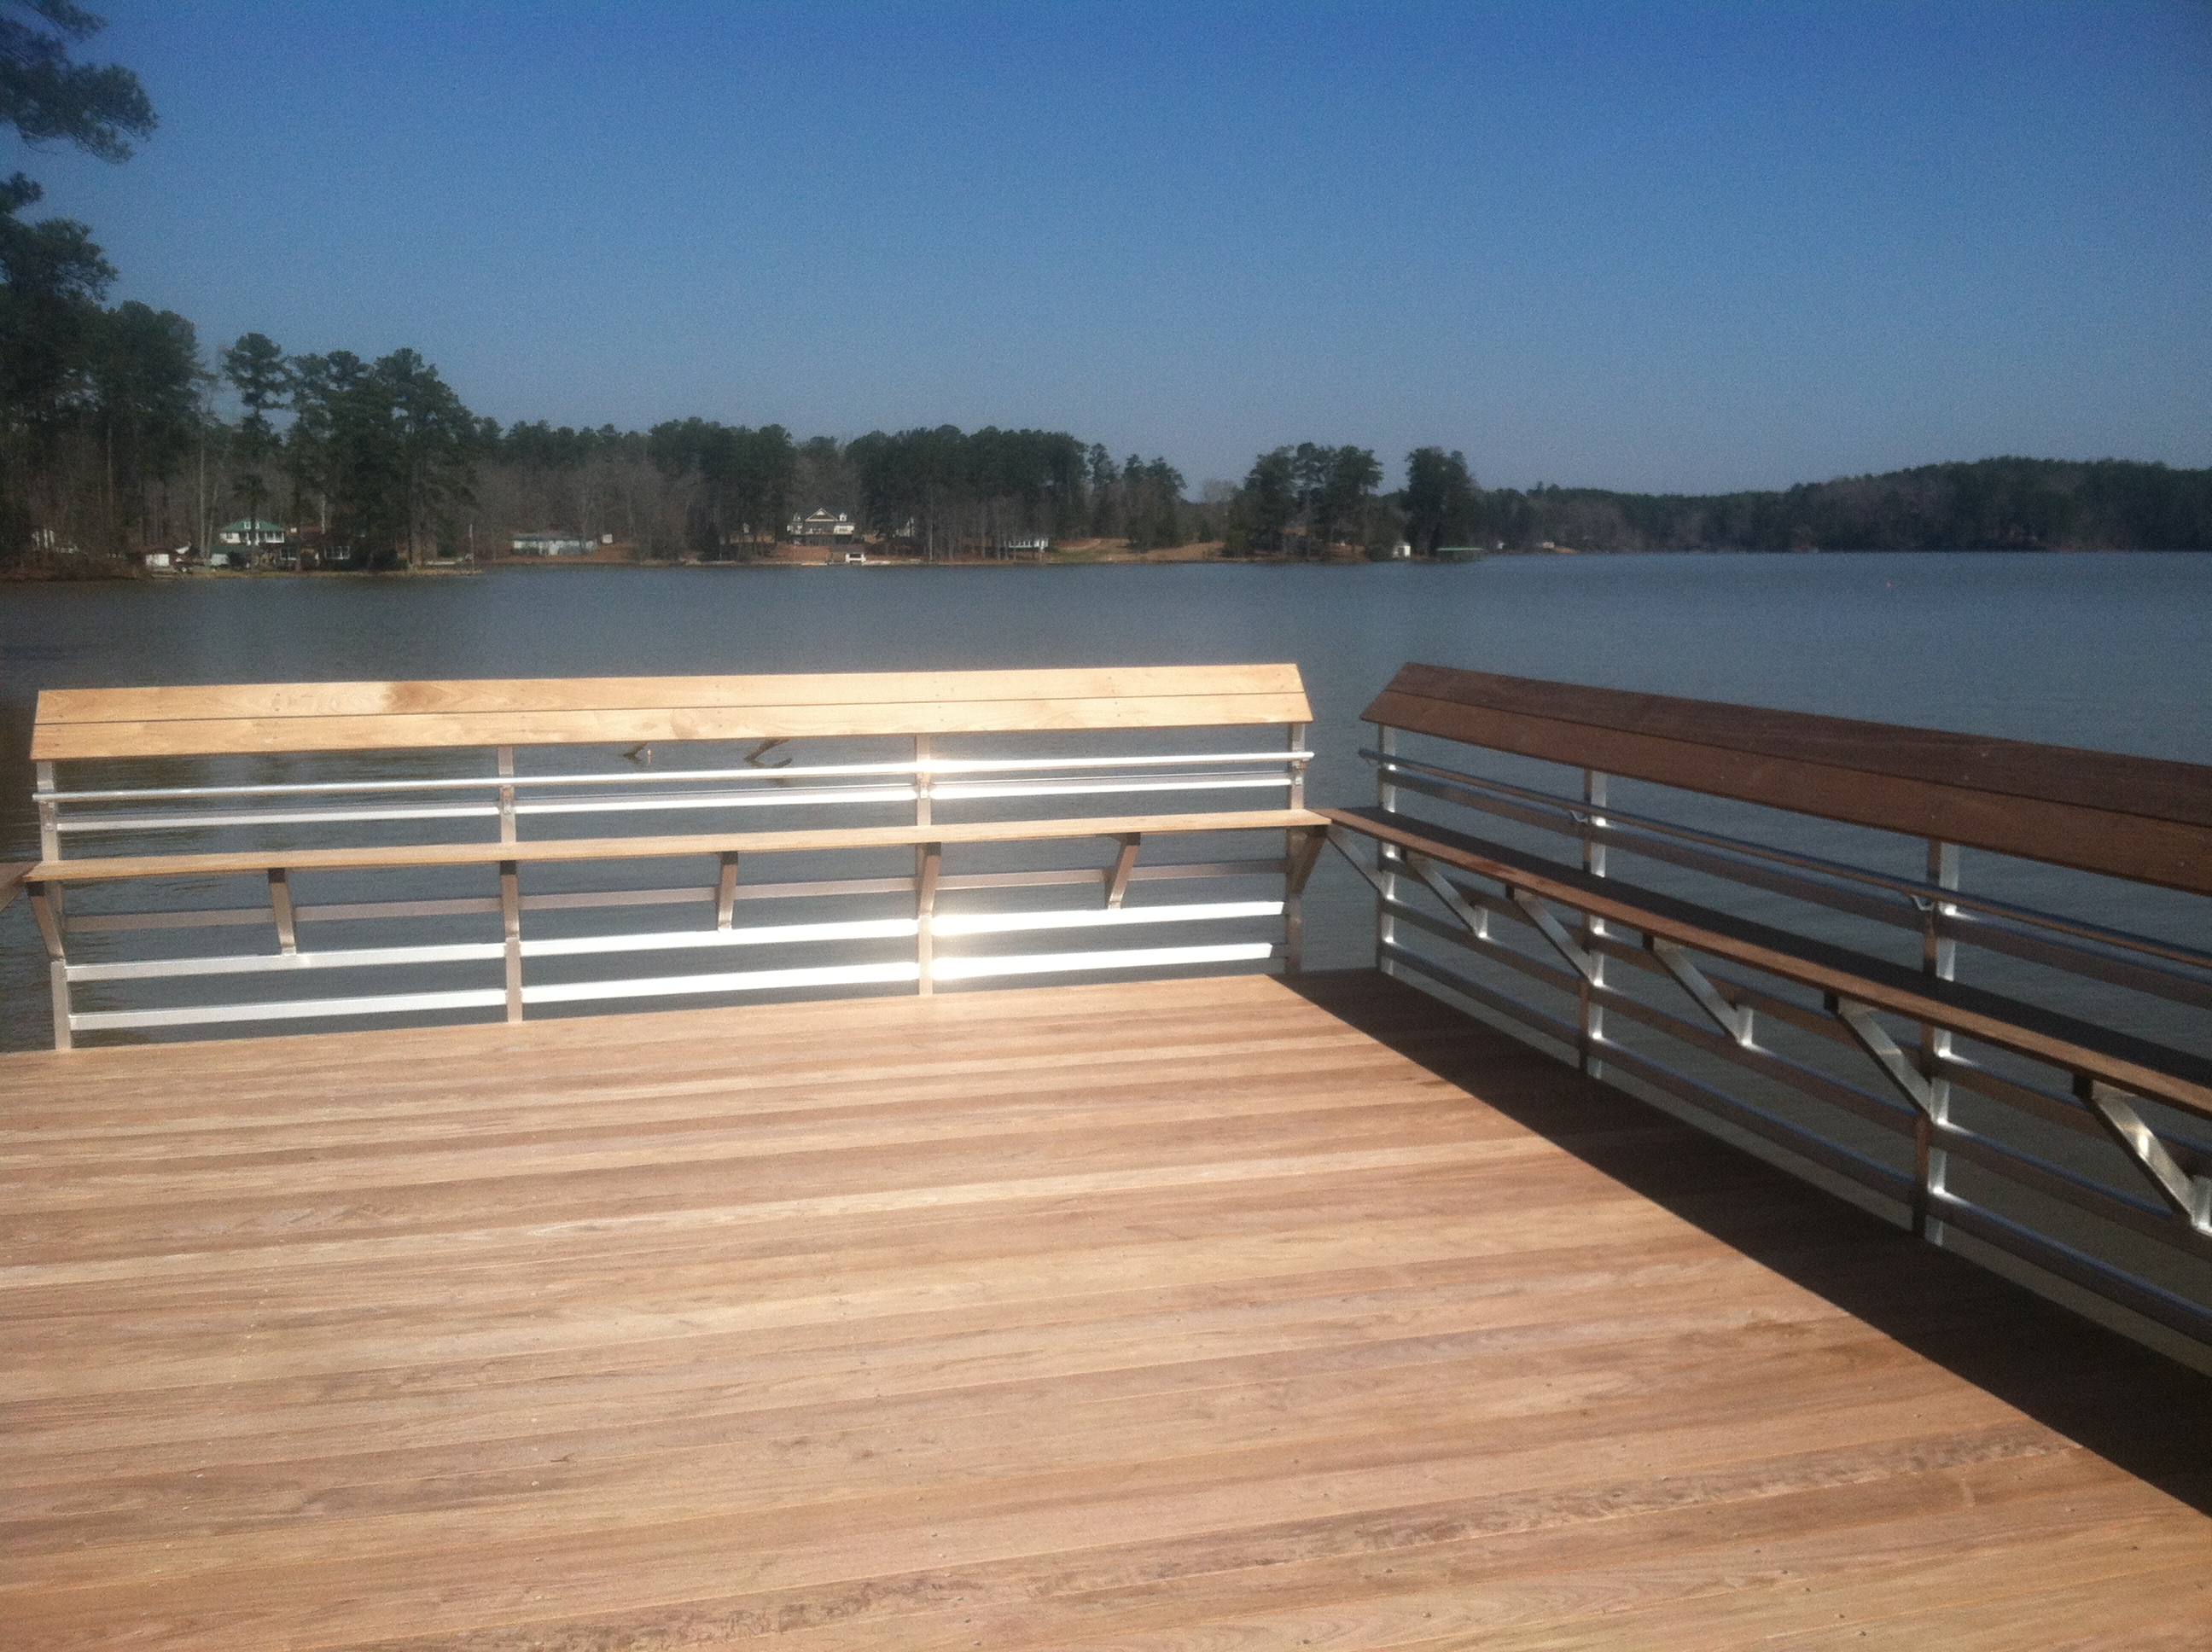 dock design ideas - Dock Design Ideas